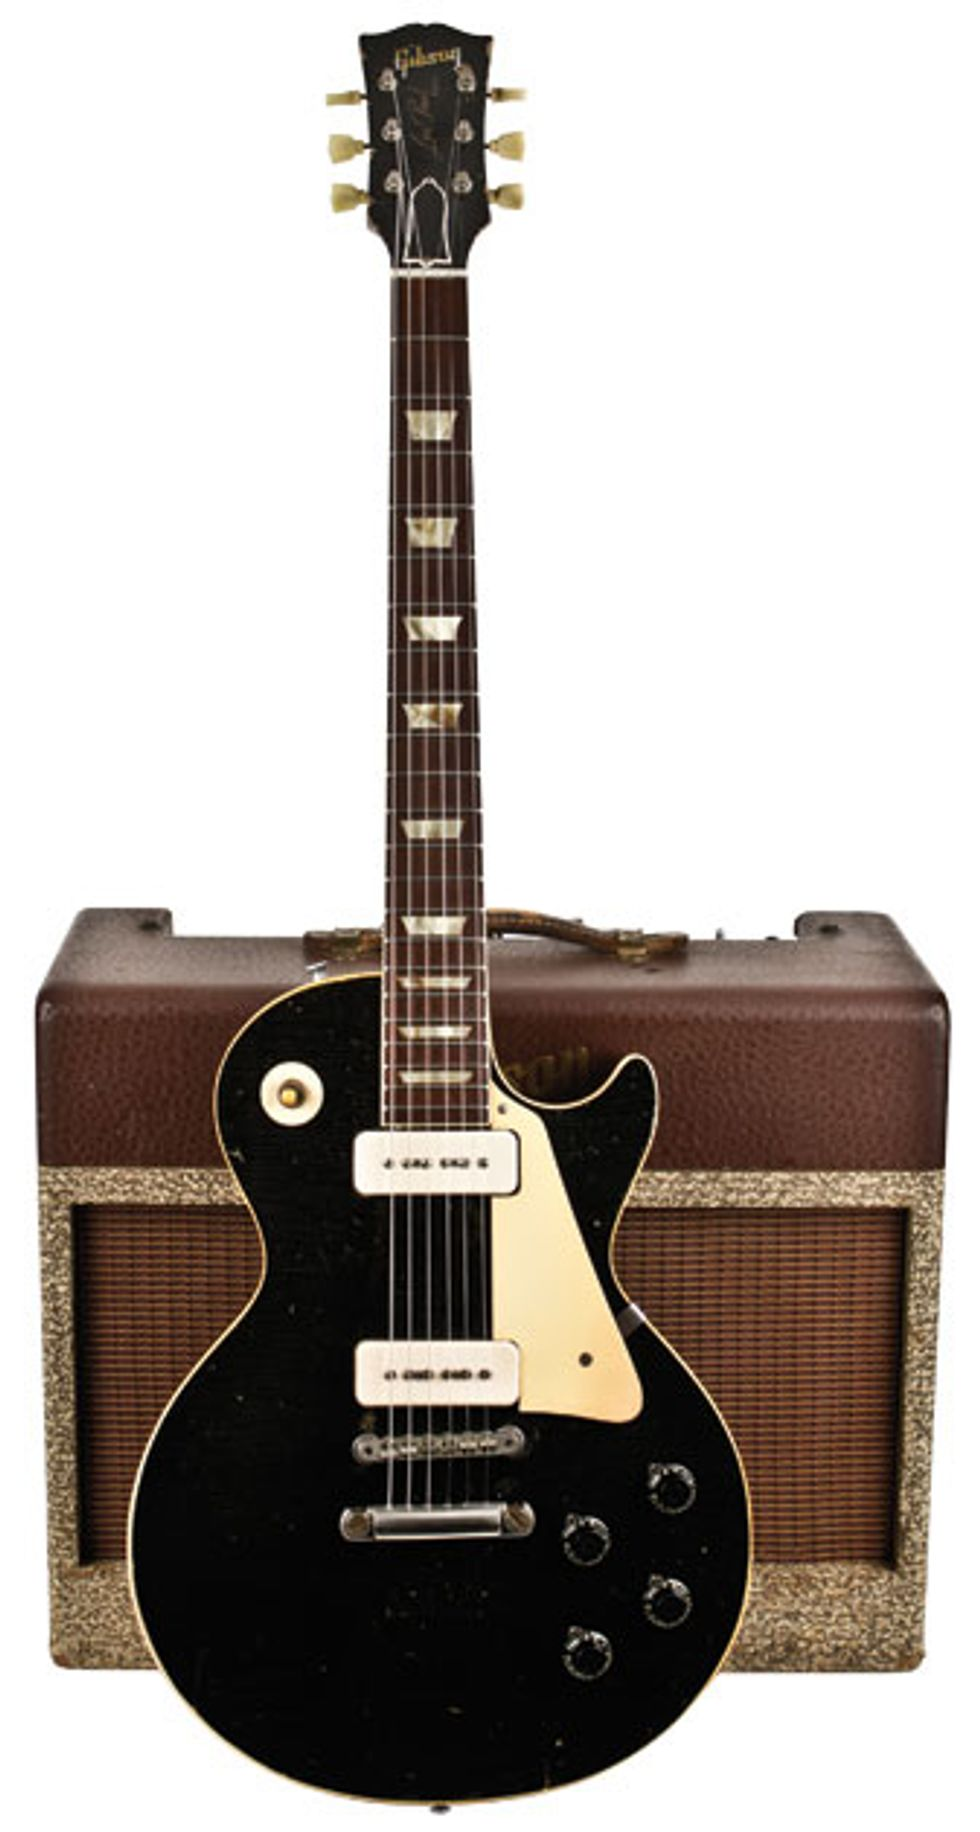 Though This 1956 Les Paul Sports The Black Lacquer Finish Of Gibsons Custom Serial Number 65398 Is Actually A Goldtop In Disguise